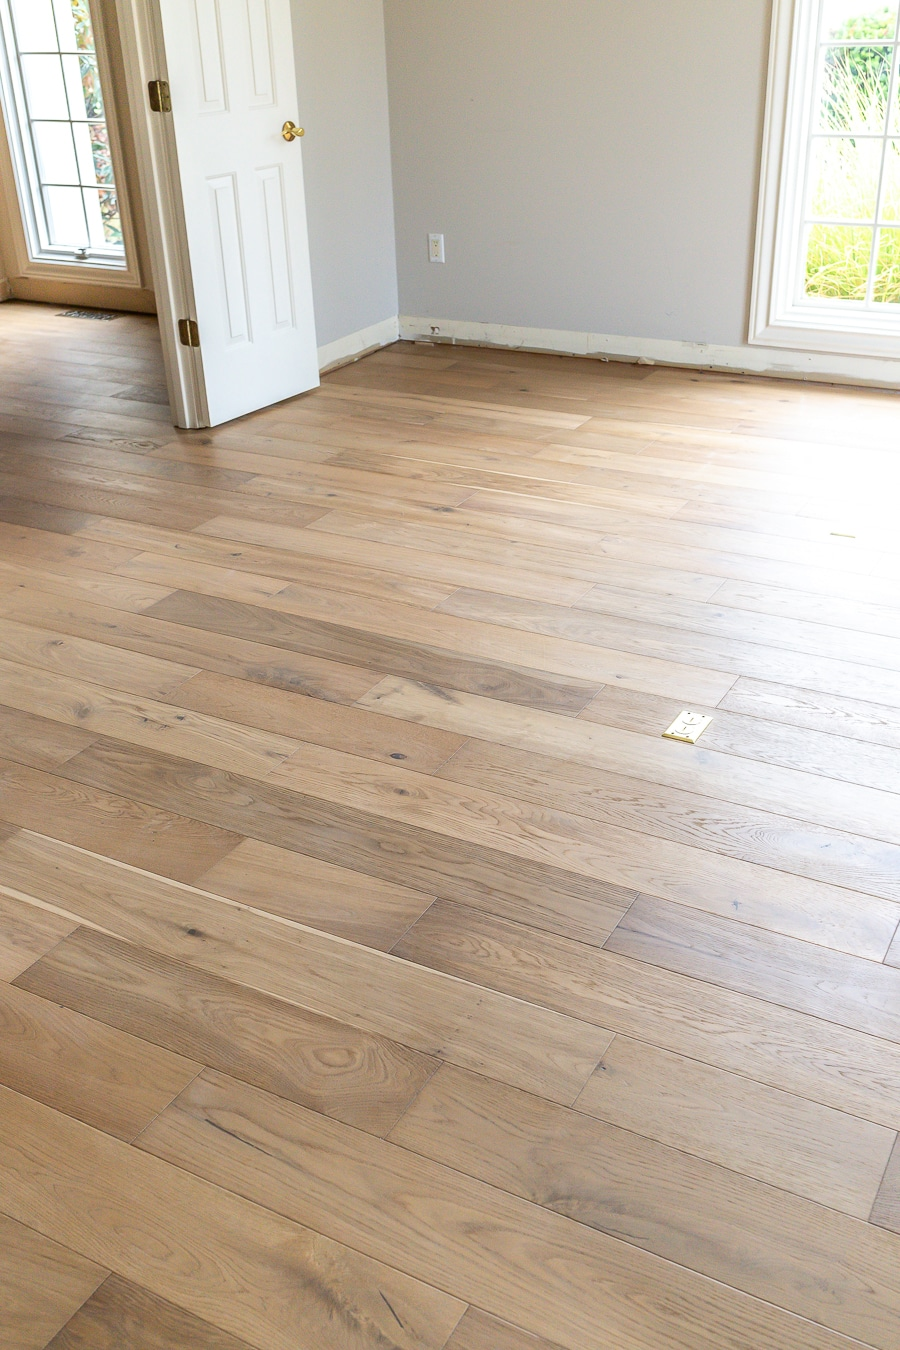 How to install hardwood flooring click lock installation